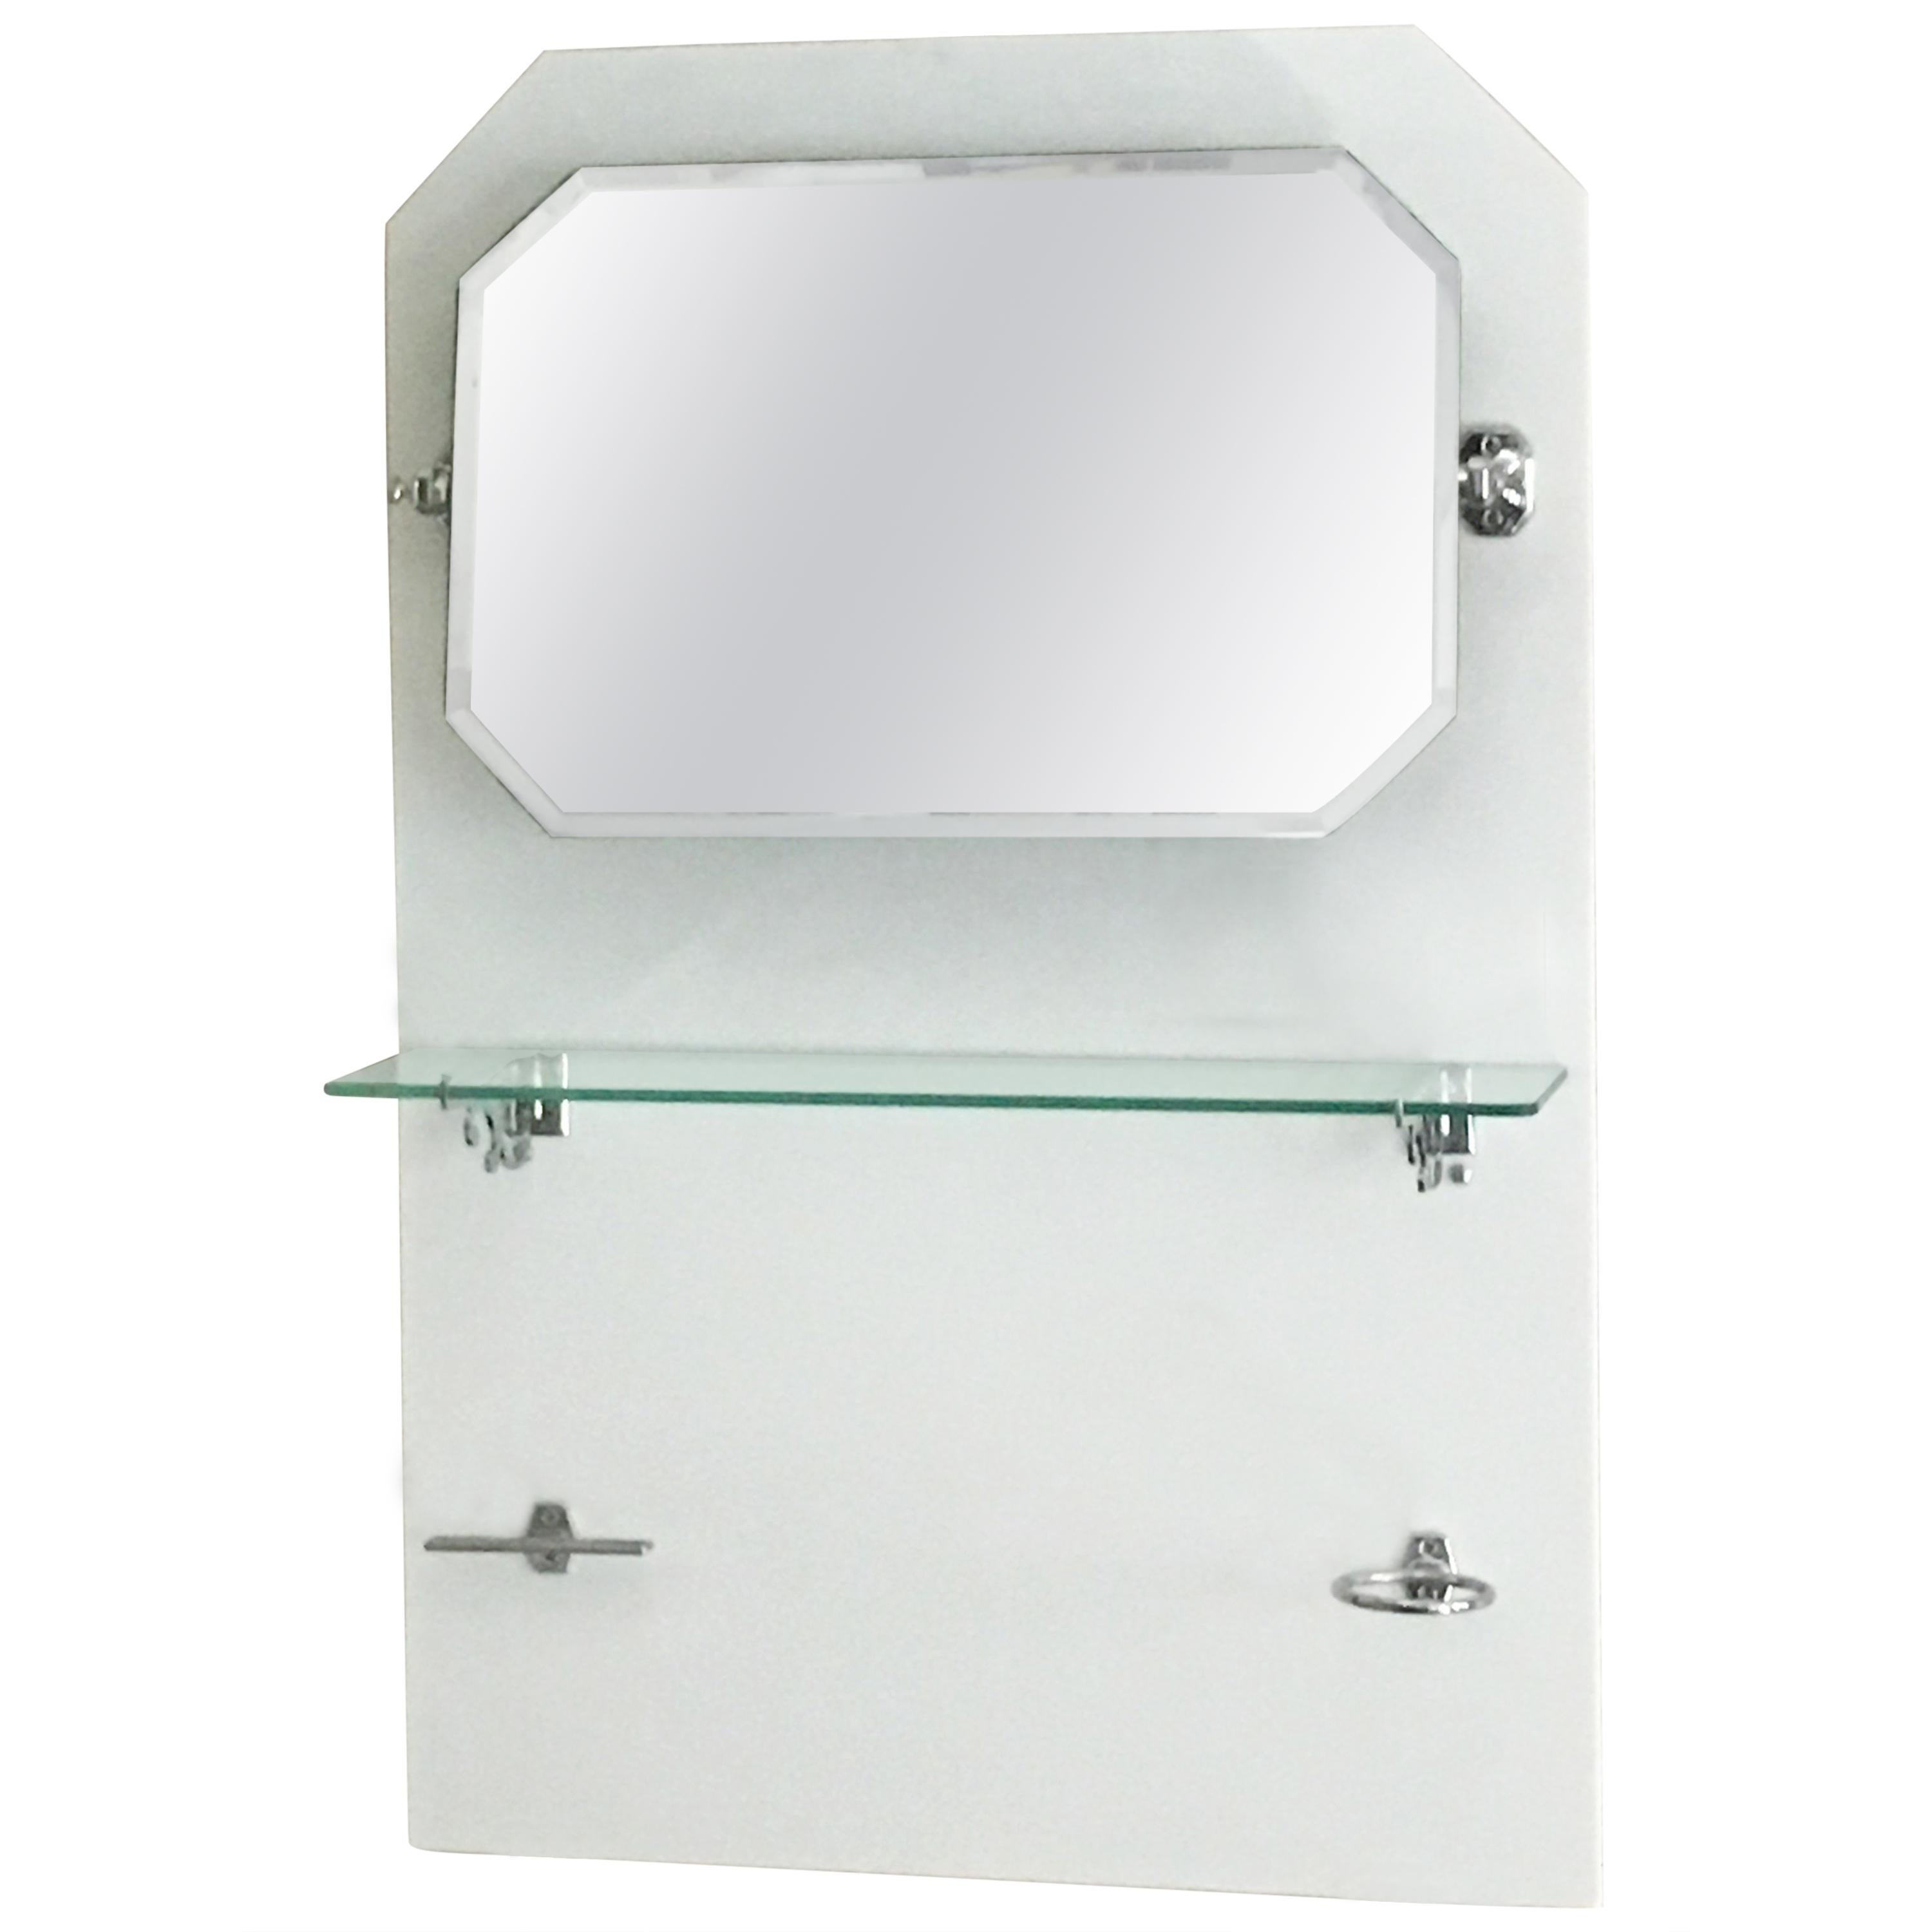 French Bathroom Adjustable Mirror With Shelf And Accessories From 1920s For  Sale